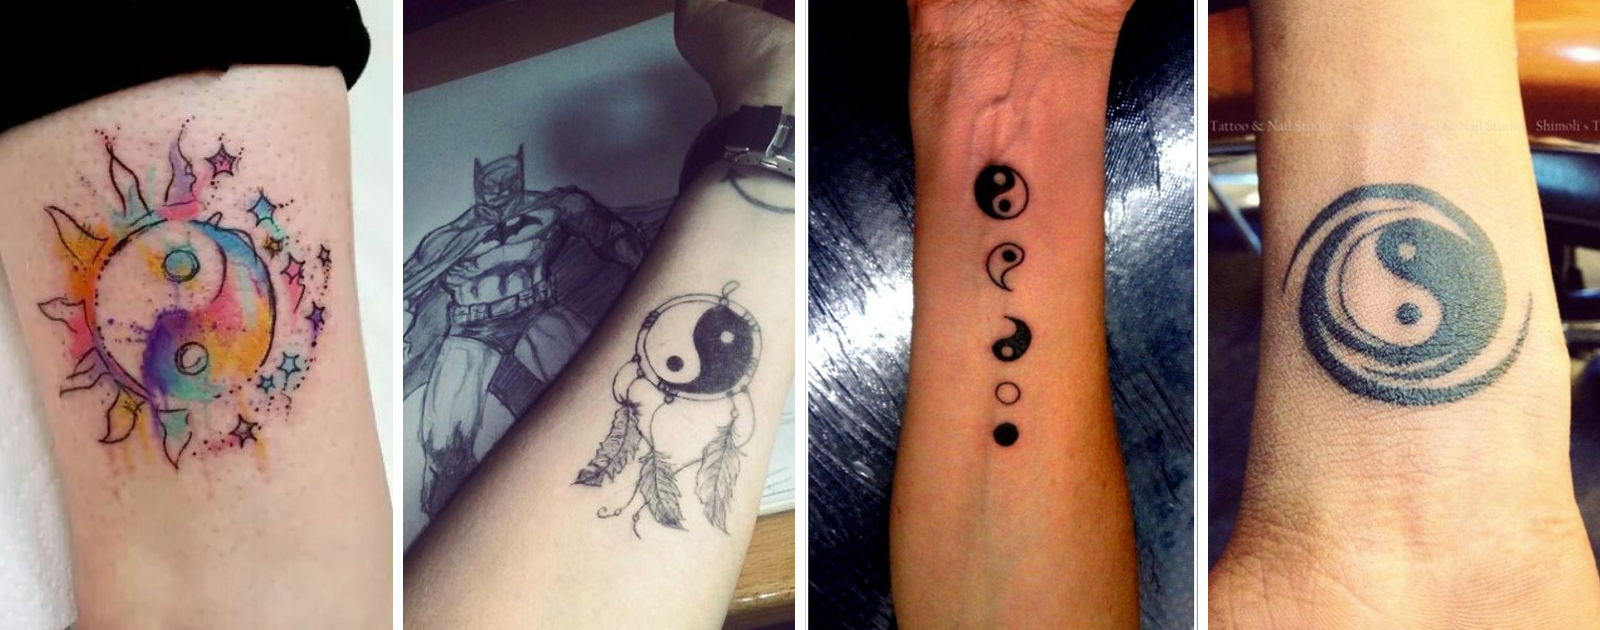 small yin yang tattoo on wrist